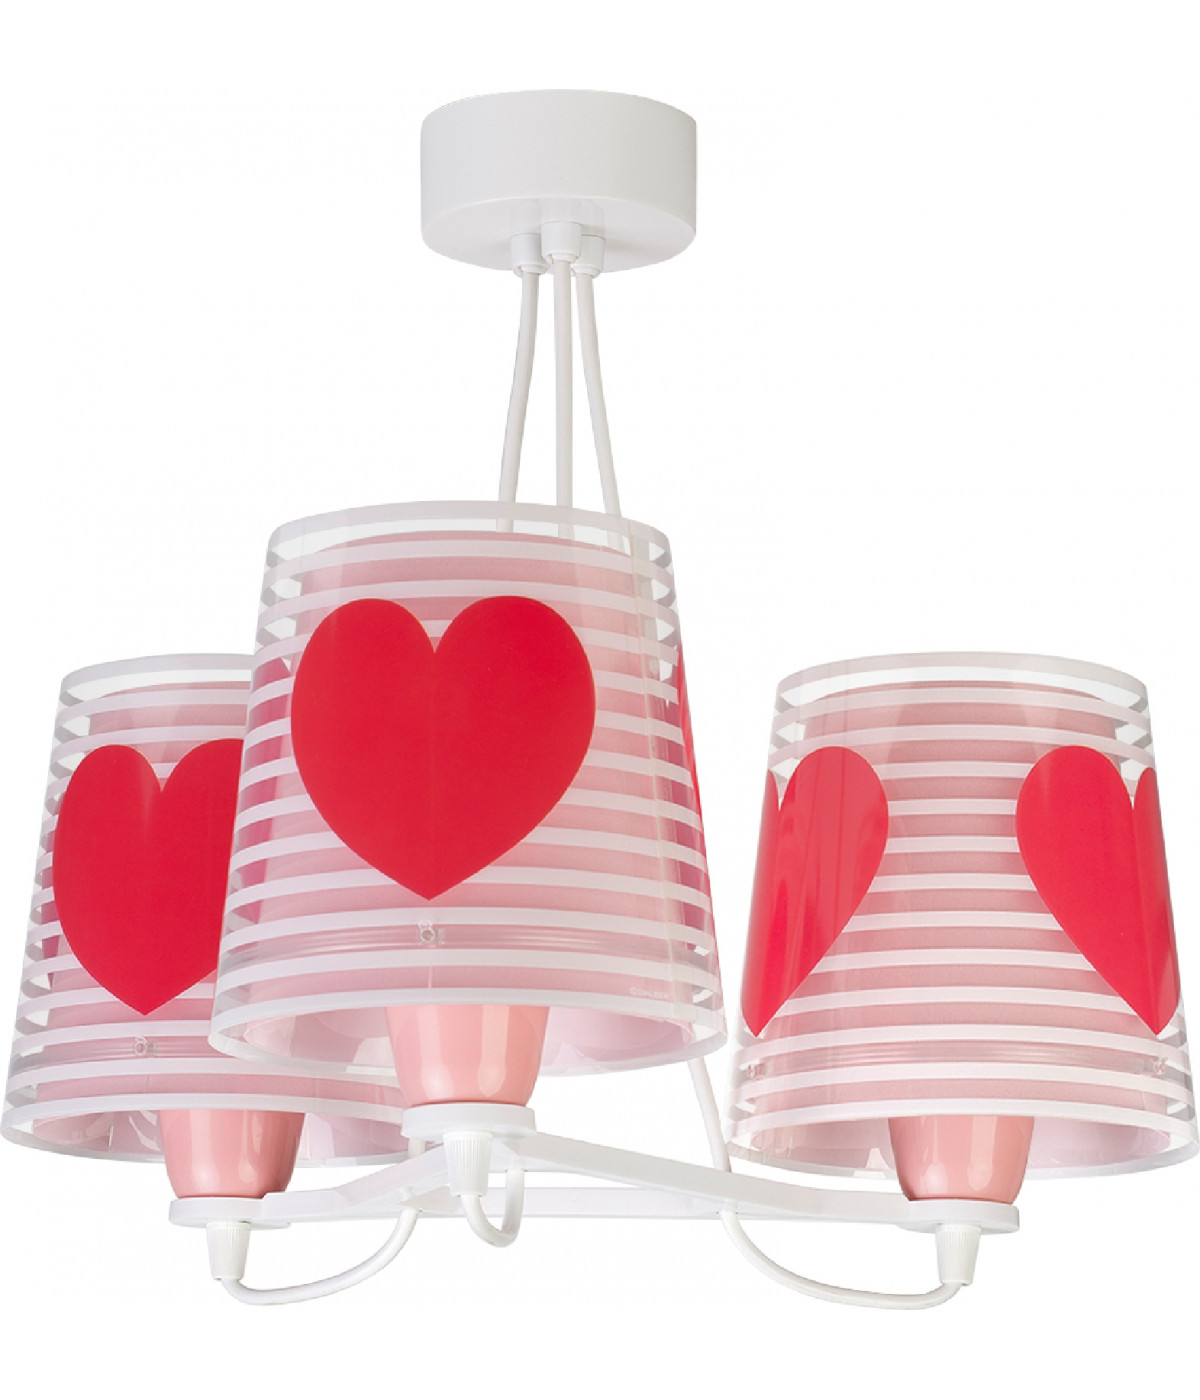 3 light Kids Hanging lamp Light Feeling pink